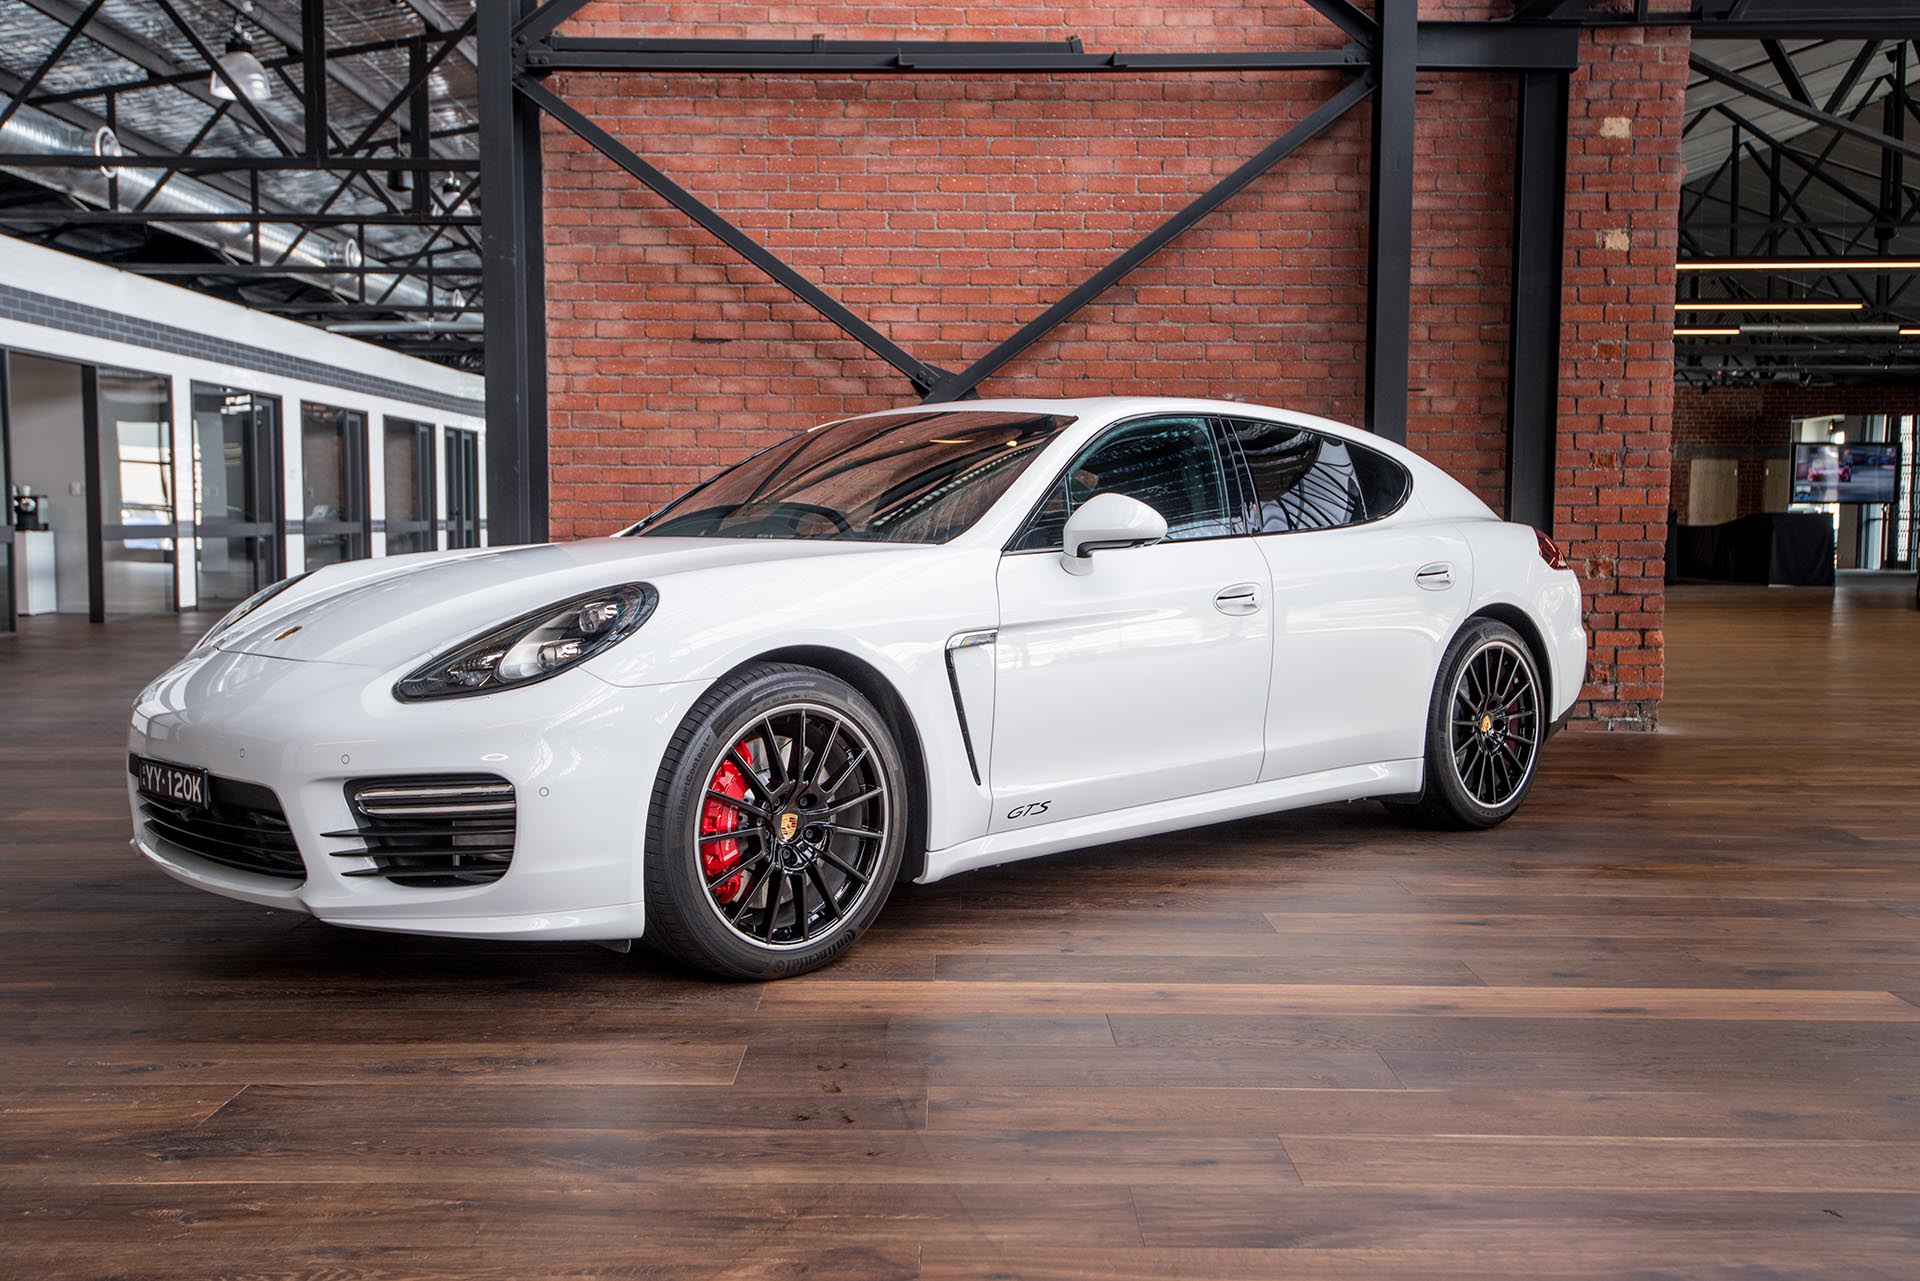 Car Lot For Sale >> 2016 Porsche Panamera GTS - Richmonds - Classic and ...